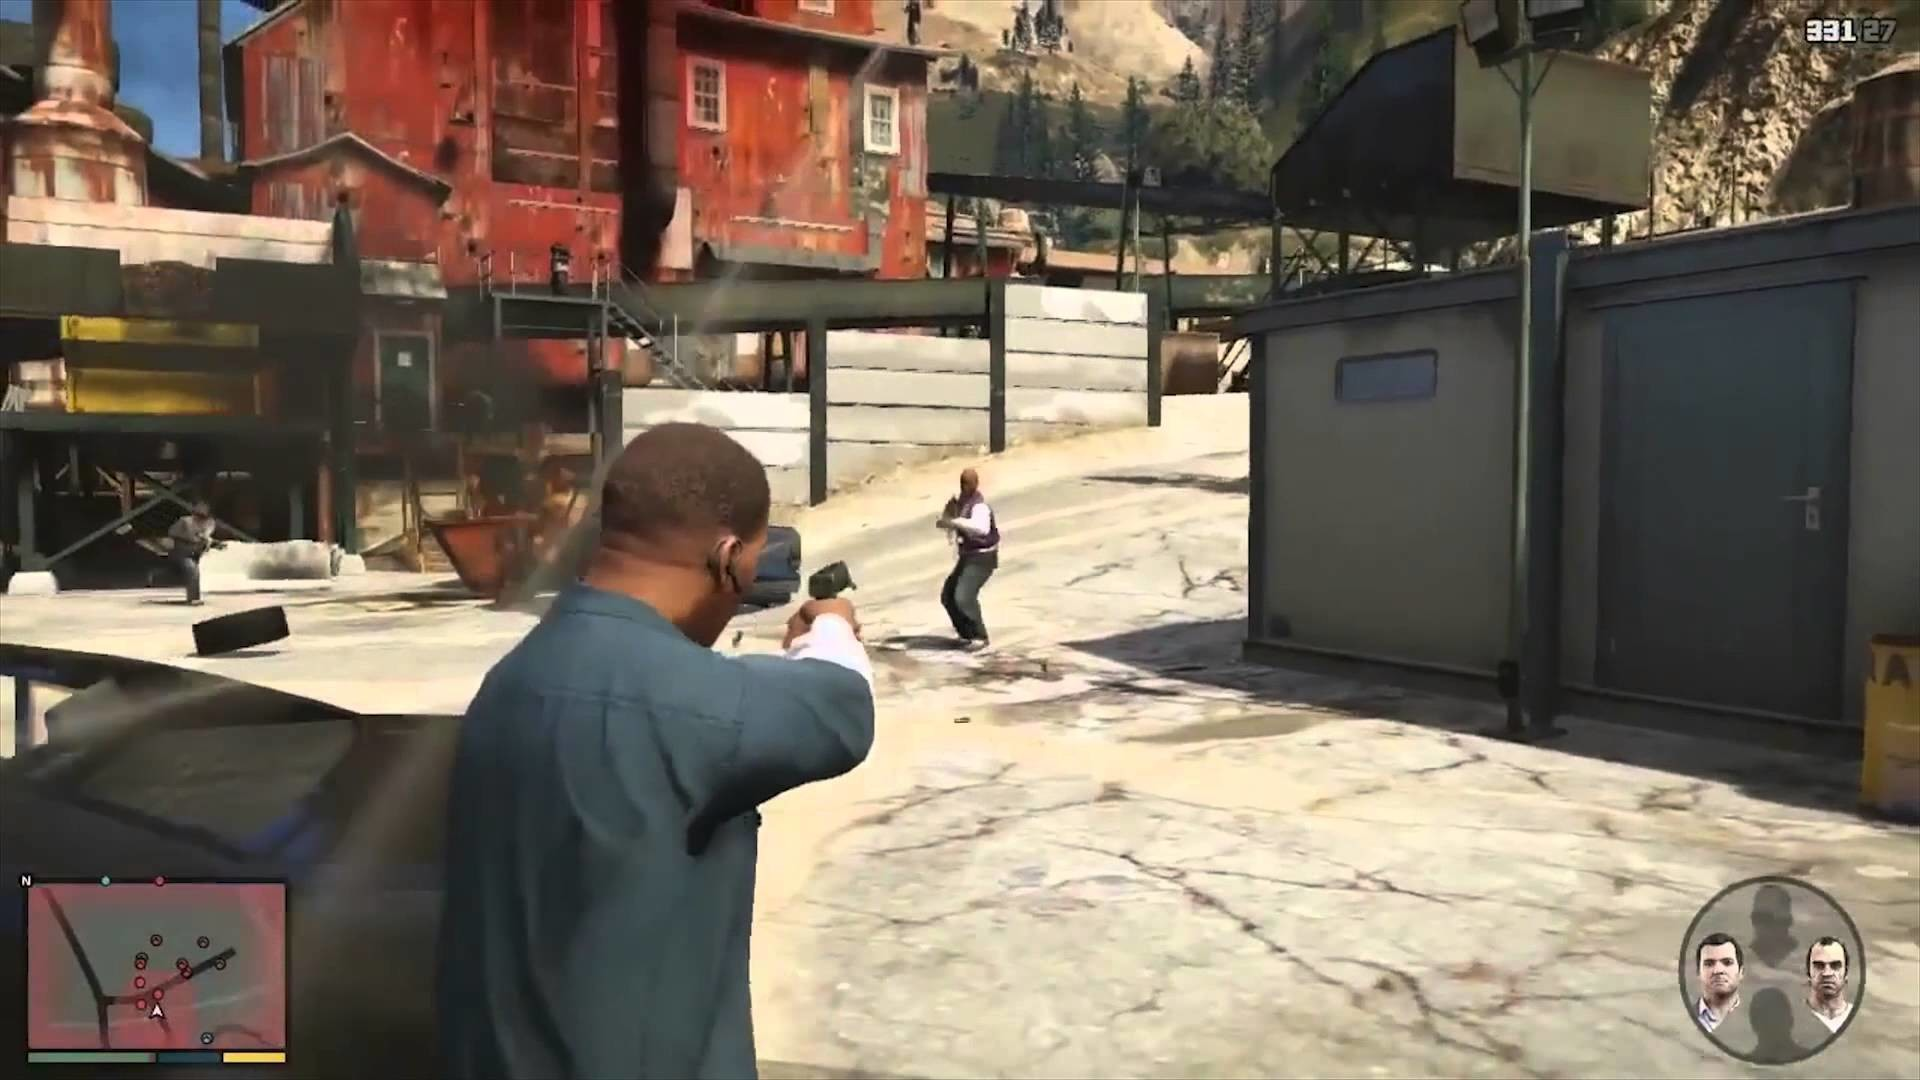 1920x1080 Grand Theft Auto V - GTA 5 Official Gameplay Video HD 1080p BEST QUALITY -  YouTube